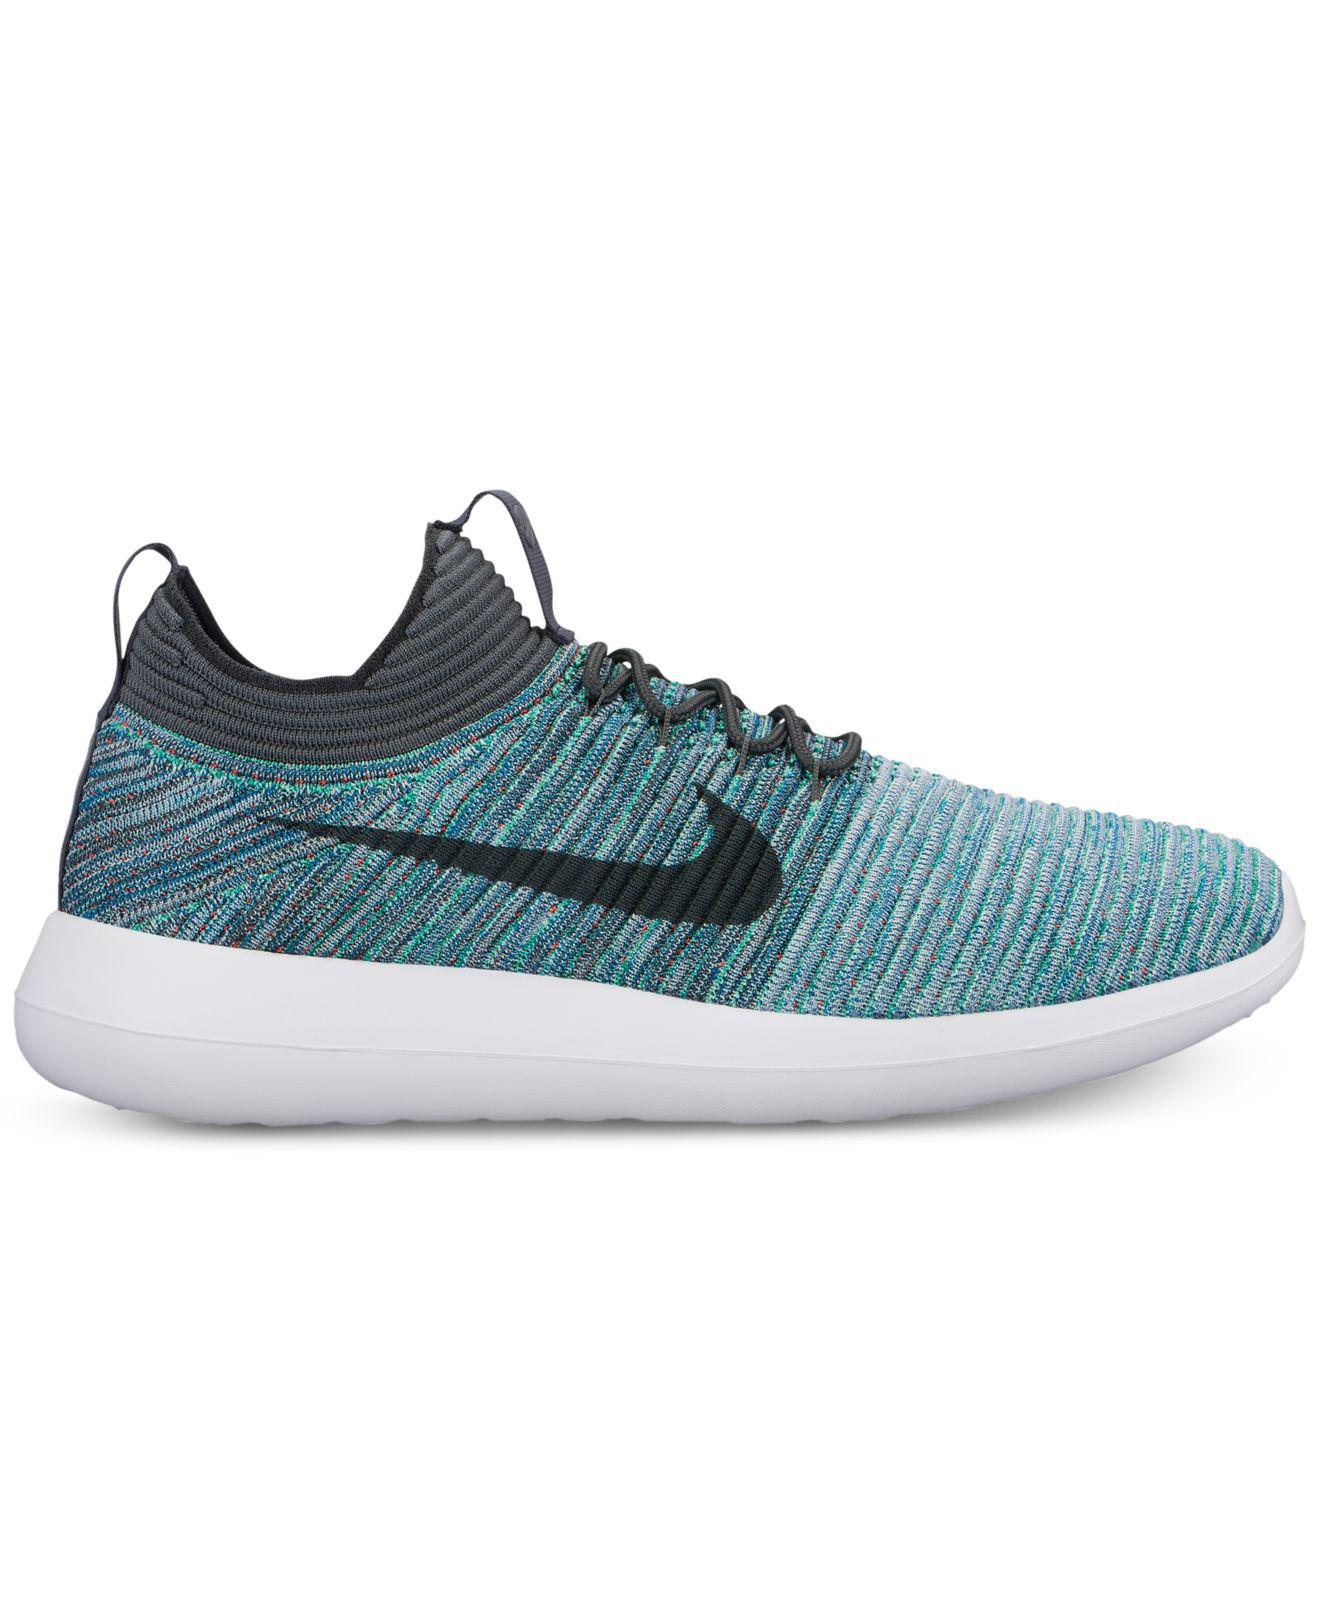 the best attitude 703e2 f9f35 ... low cost nike. mens blue roshe two flyknit v2 casual sneakers from finish  line 363d9 ...